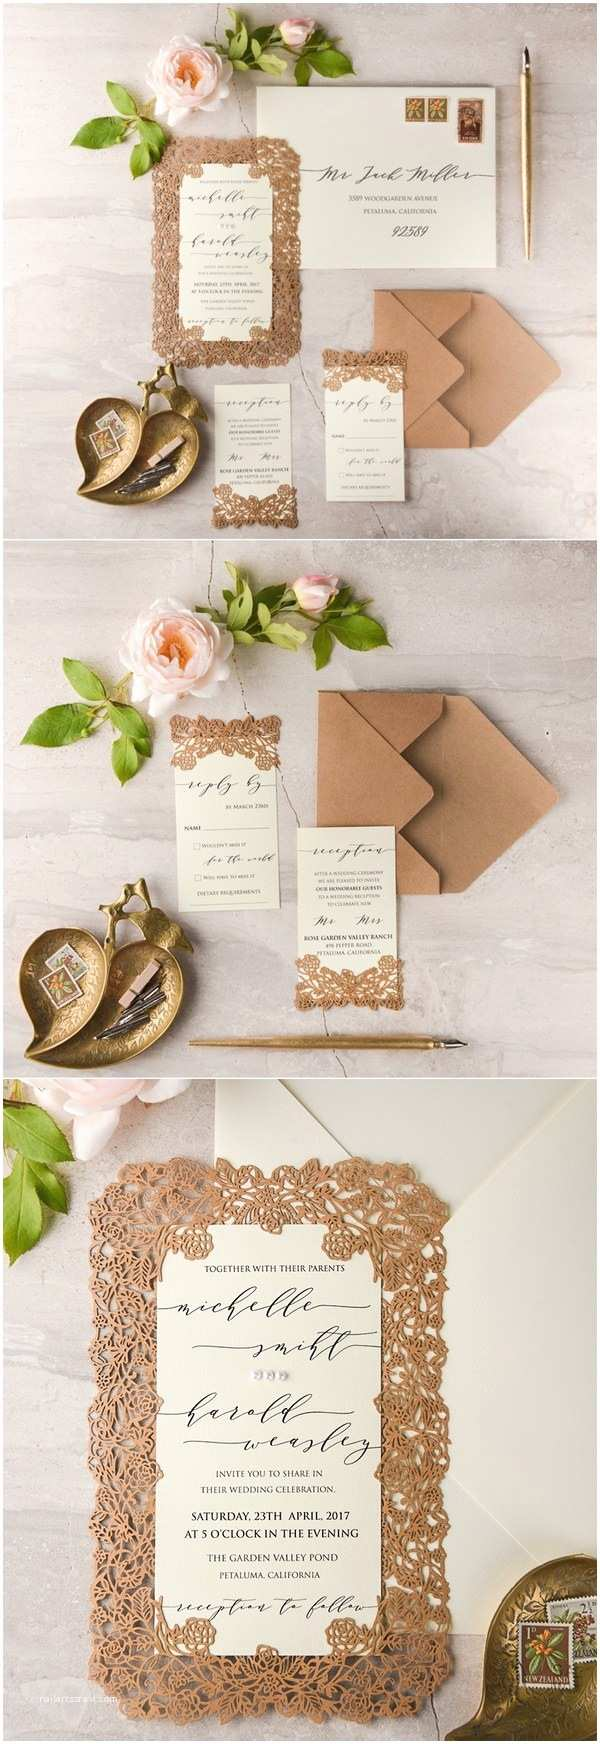 Kraft Paper Wedding Invitation Kit We Love Laser Cut Wedding Invitations 4lovepolkadots